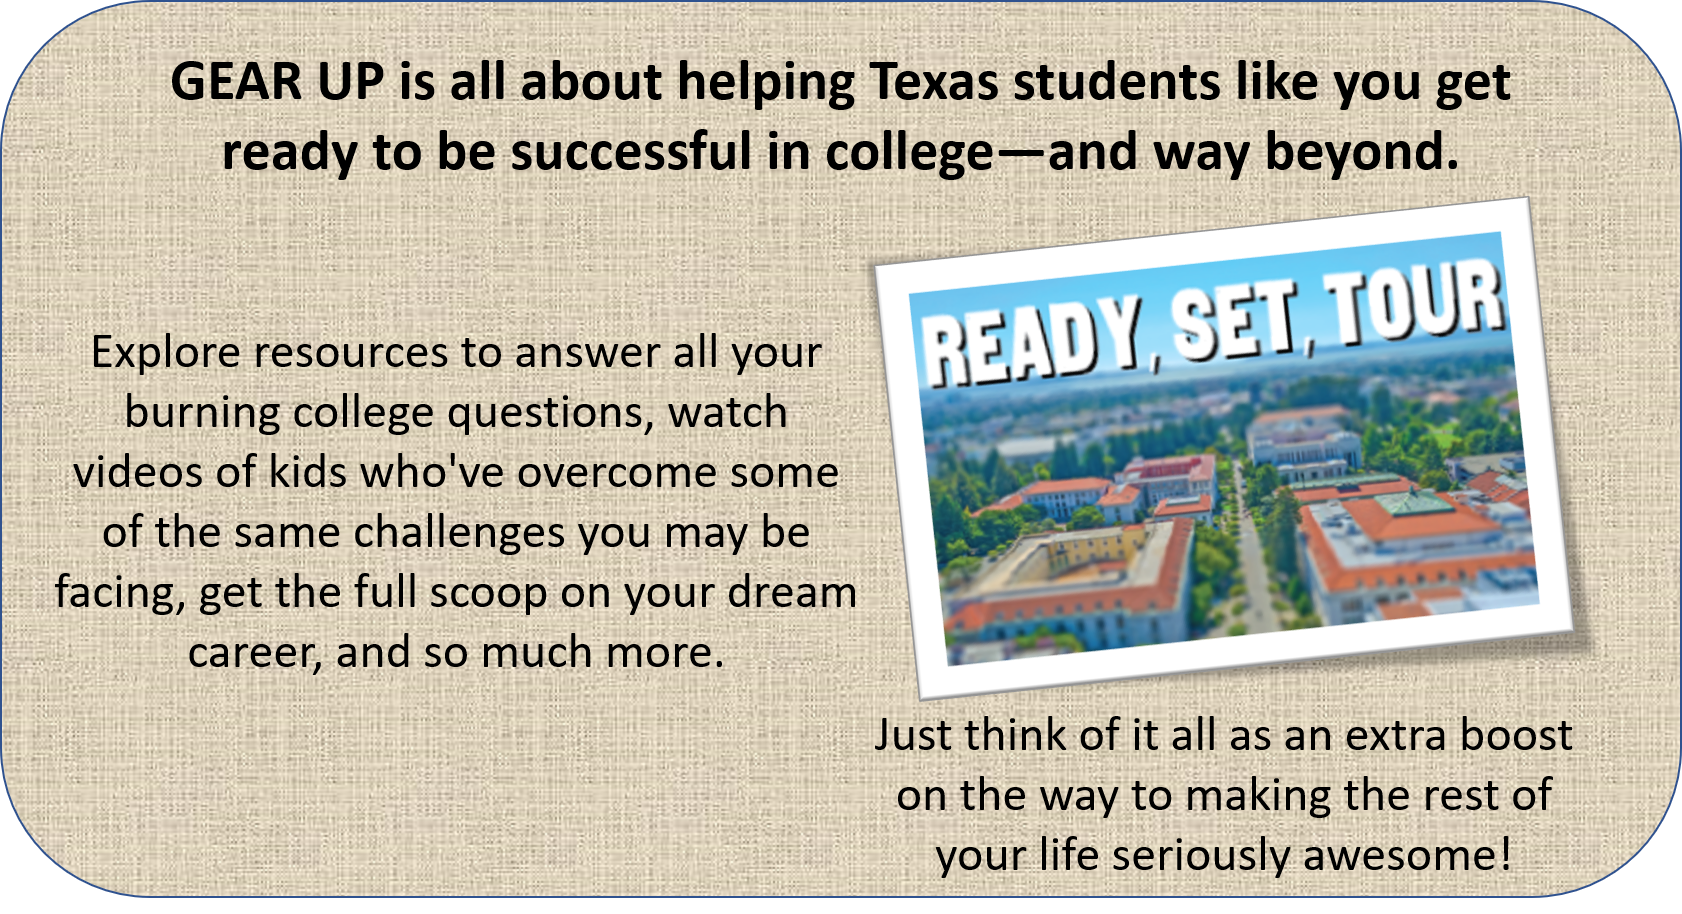 Intro image with text: GEAR UP is all about helping Texas students like you get ready to be successful in college—and way beyond.